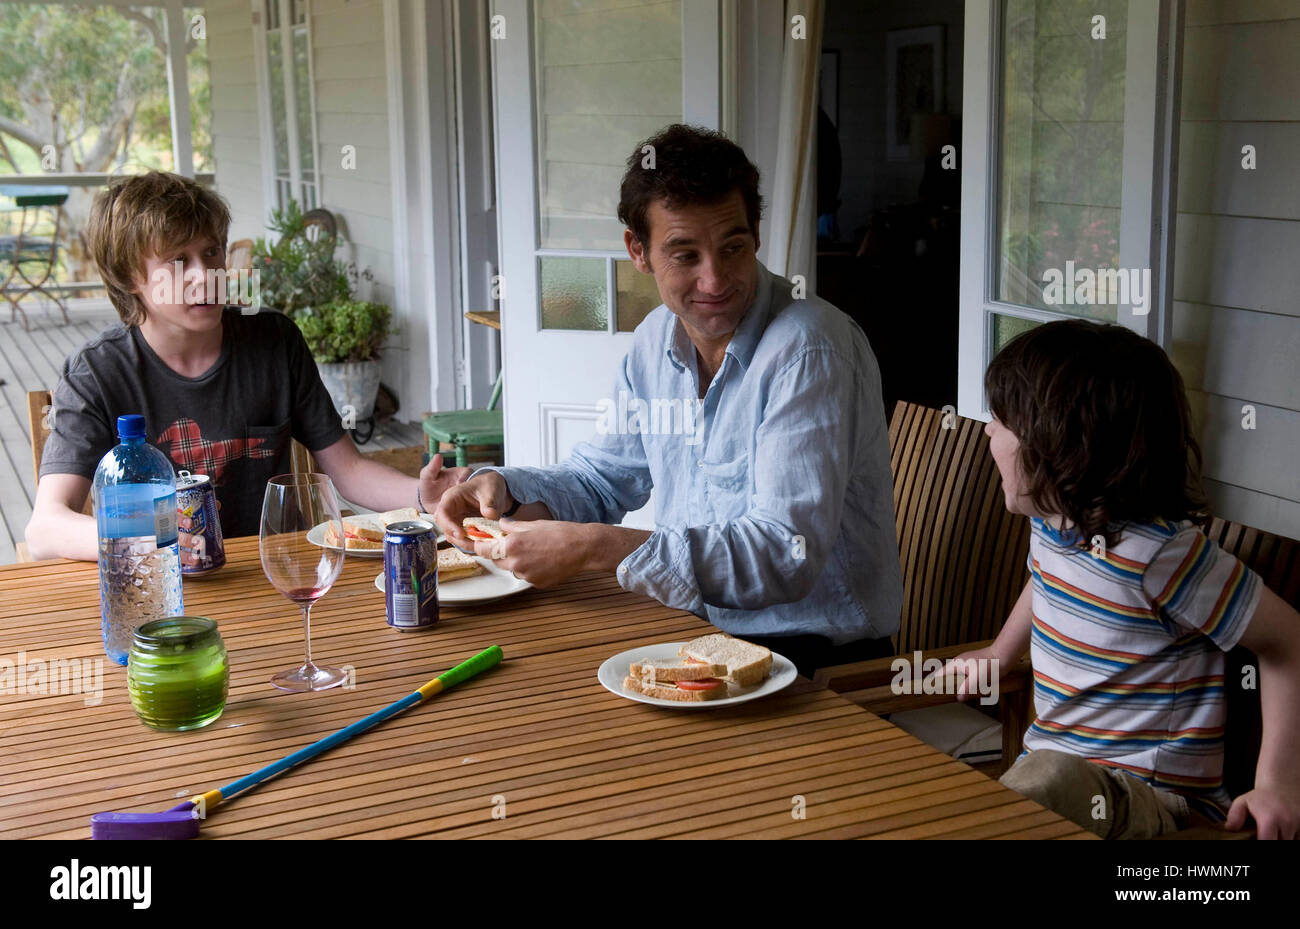 THE BOYS ARE BACK (2009) GEORGE MACKAY CLIVE OWEN NICHOLAS MCANULTY SCOTT HICKS (DIR) DISNEY/MOVIESTORE COLLECTION - Stock Image